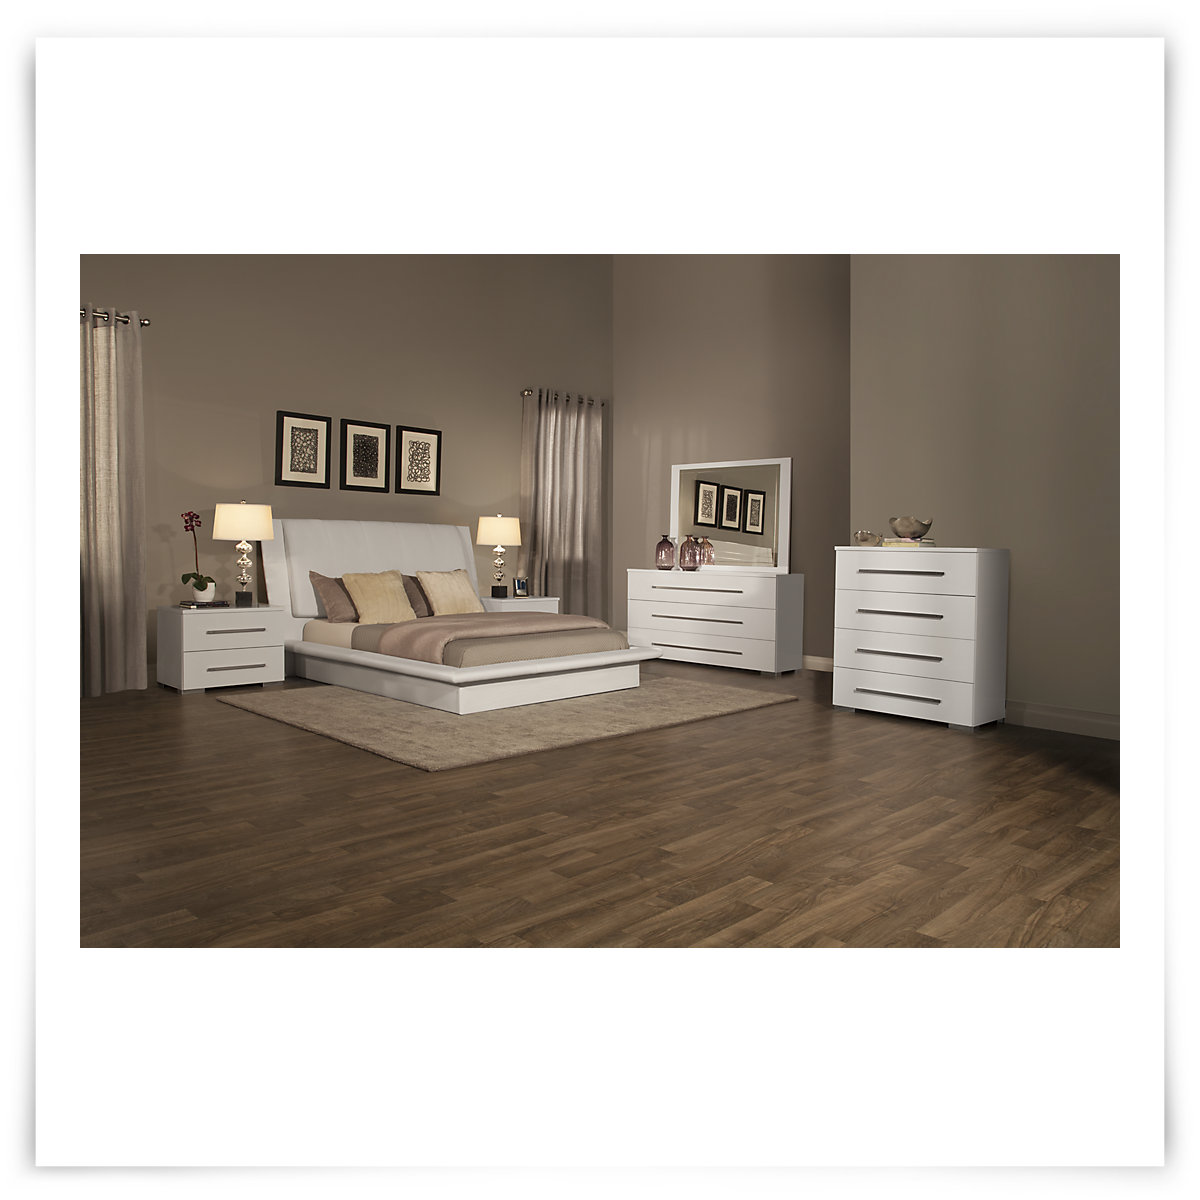 with mirror ideas further 1580797 on white dimora bedroom dresser